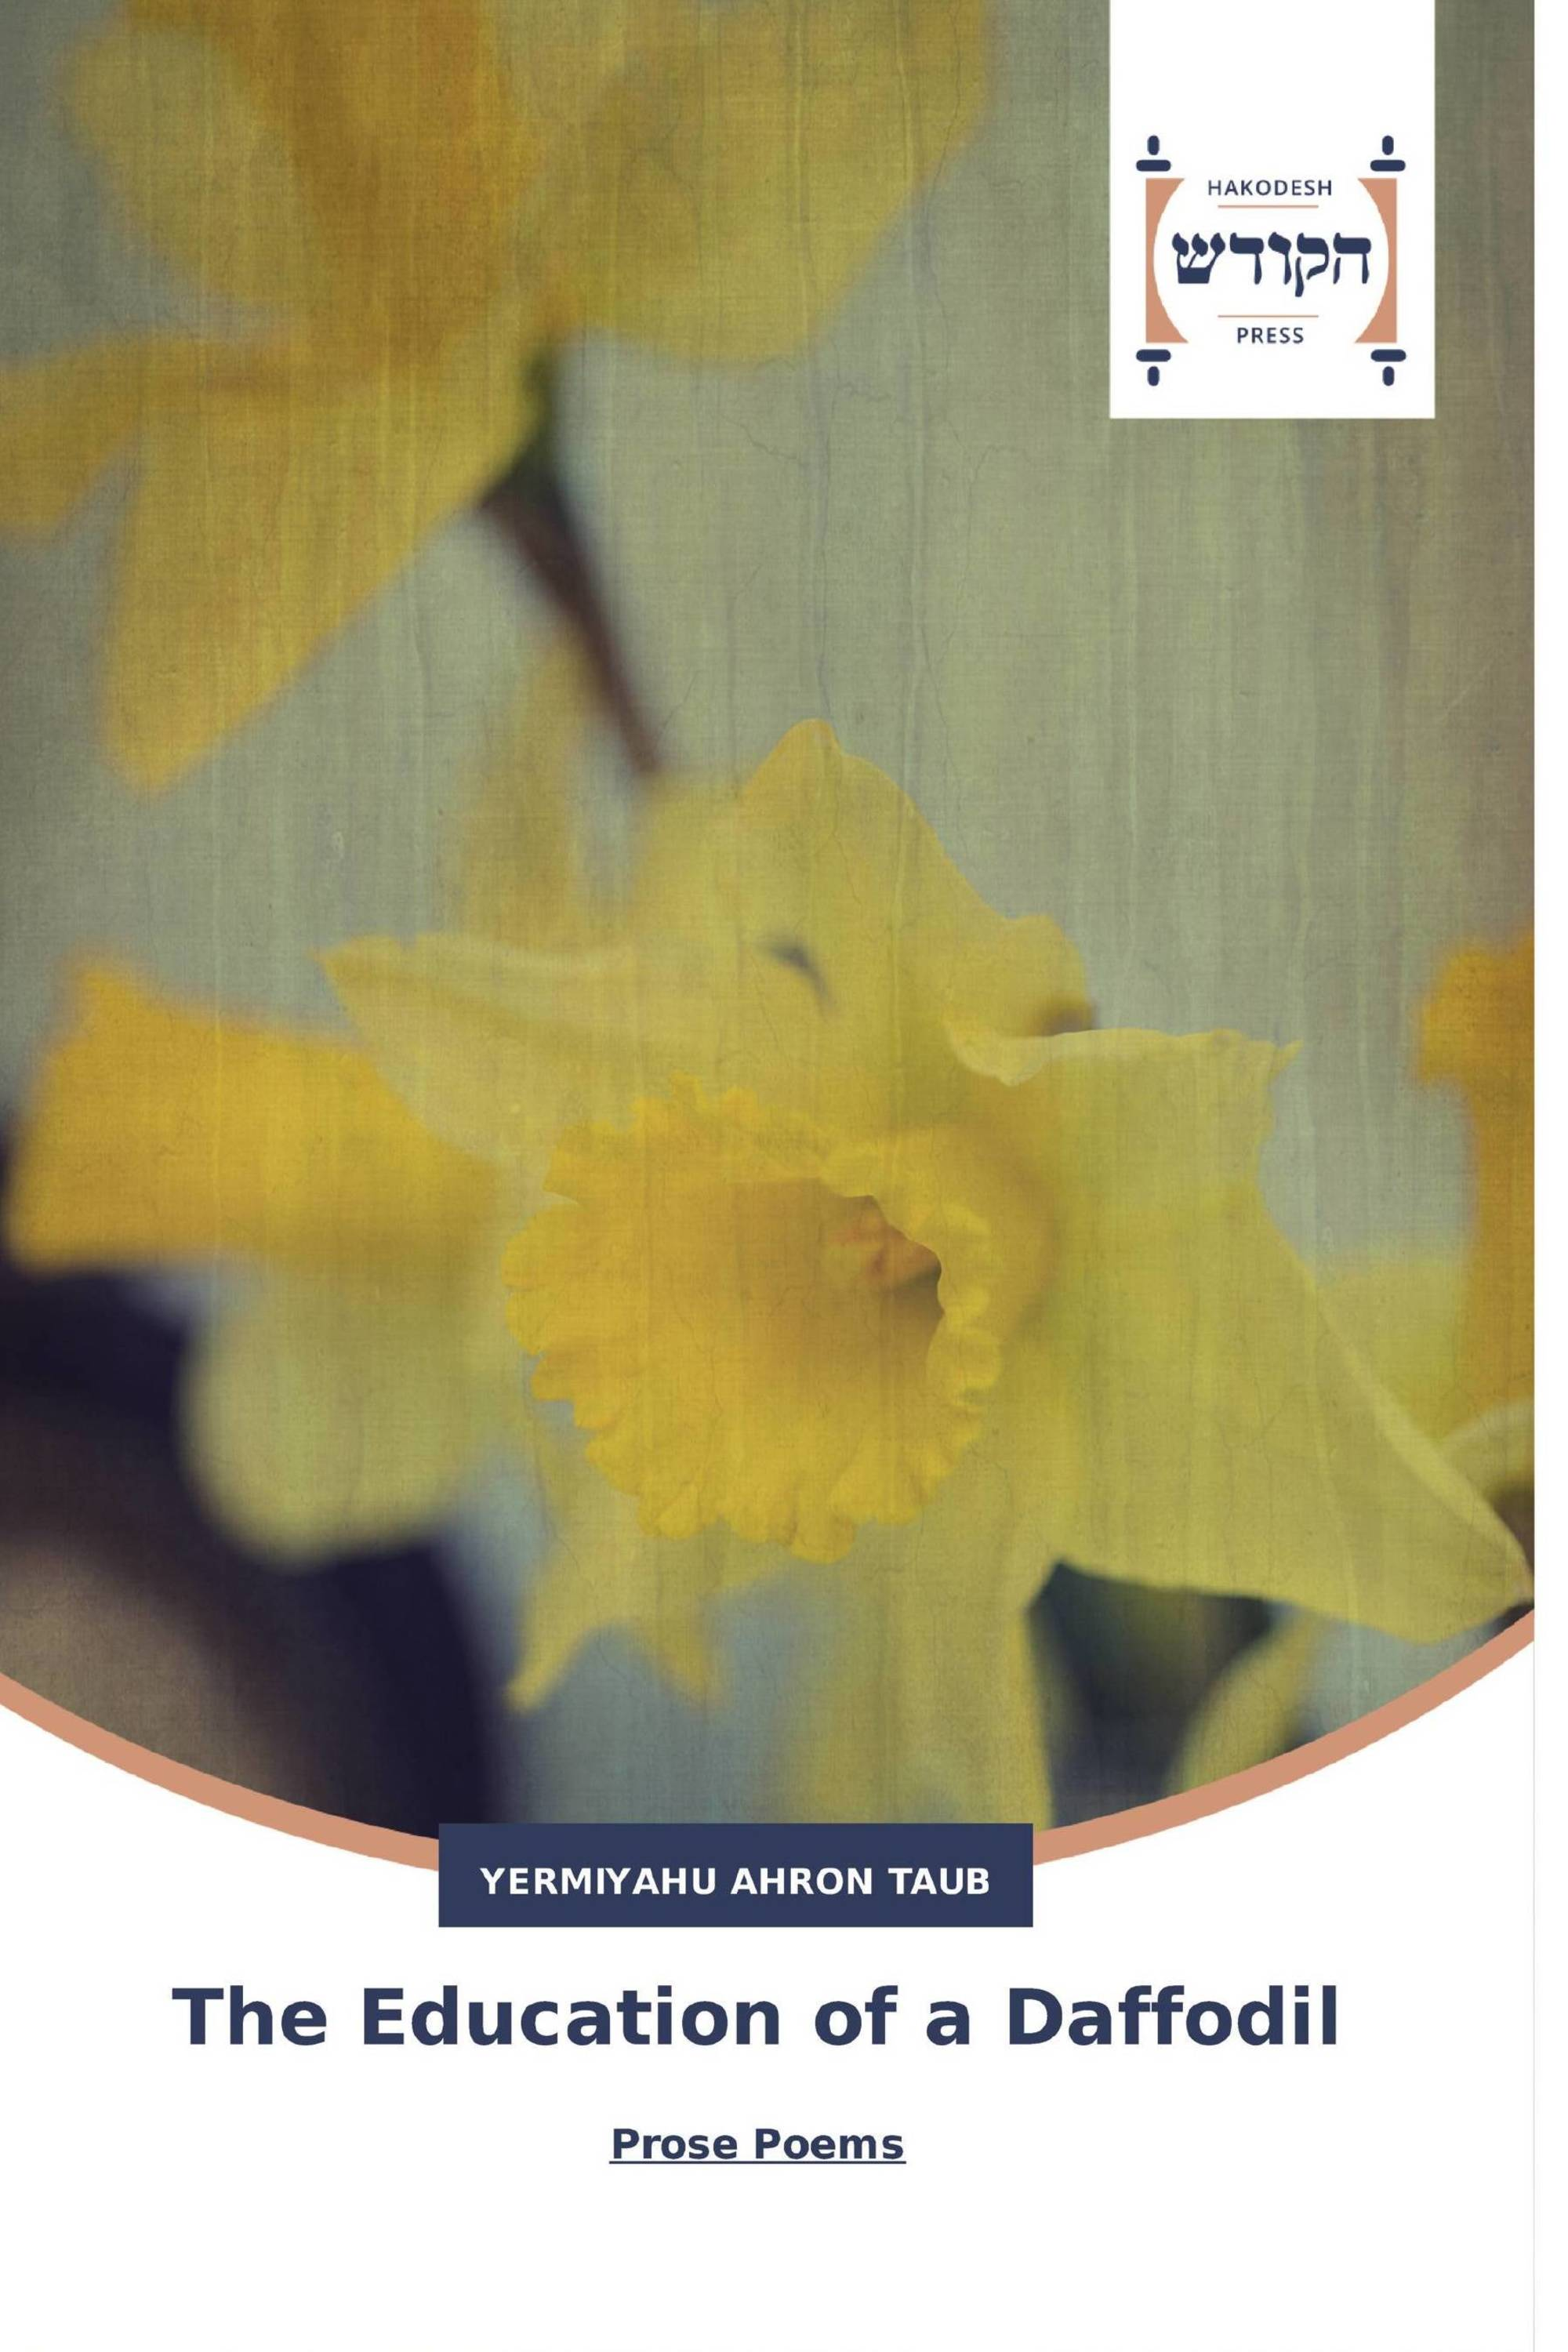 The Education of a Daffodil